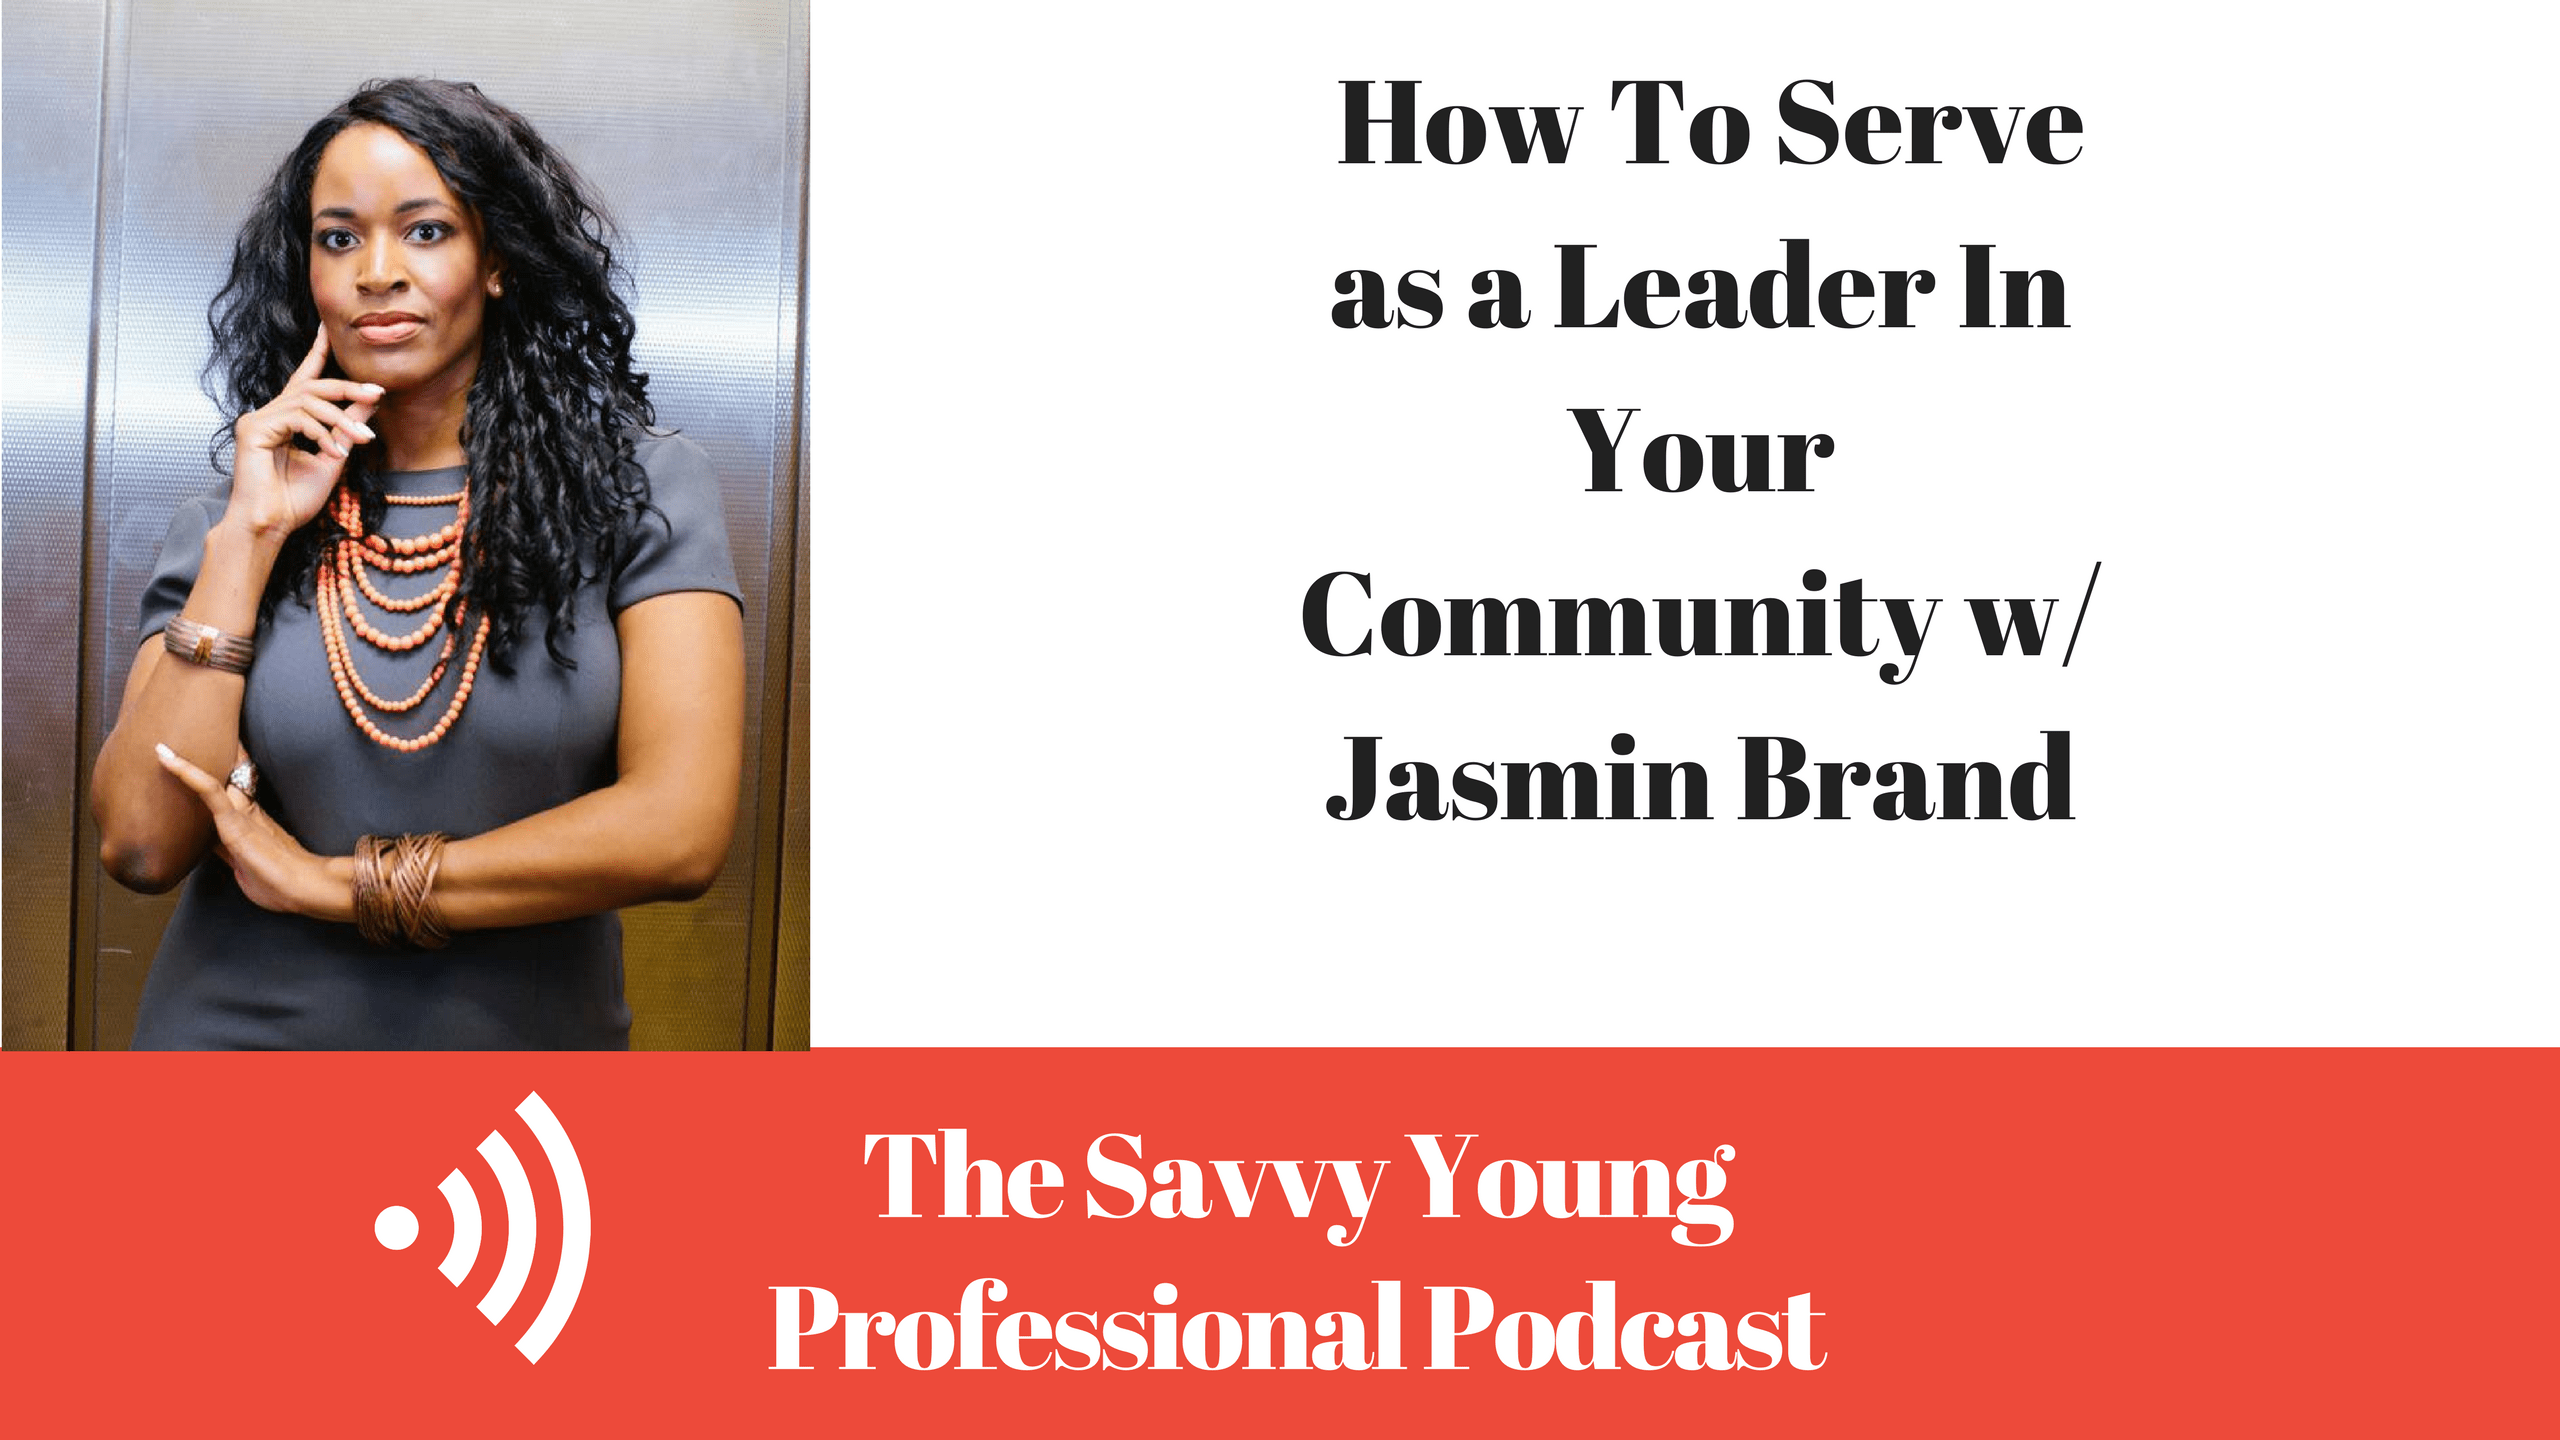 podcast-5-serve-leader-community-w-jasmin-brand